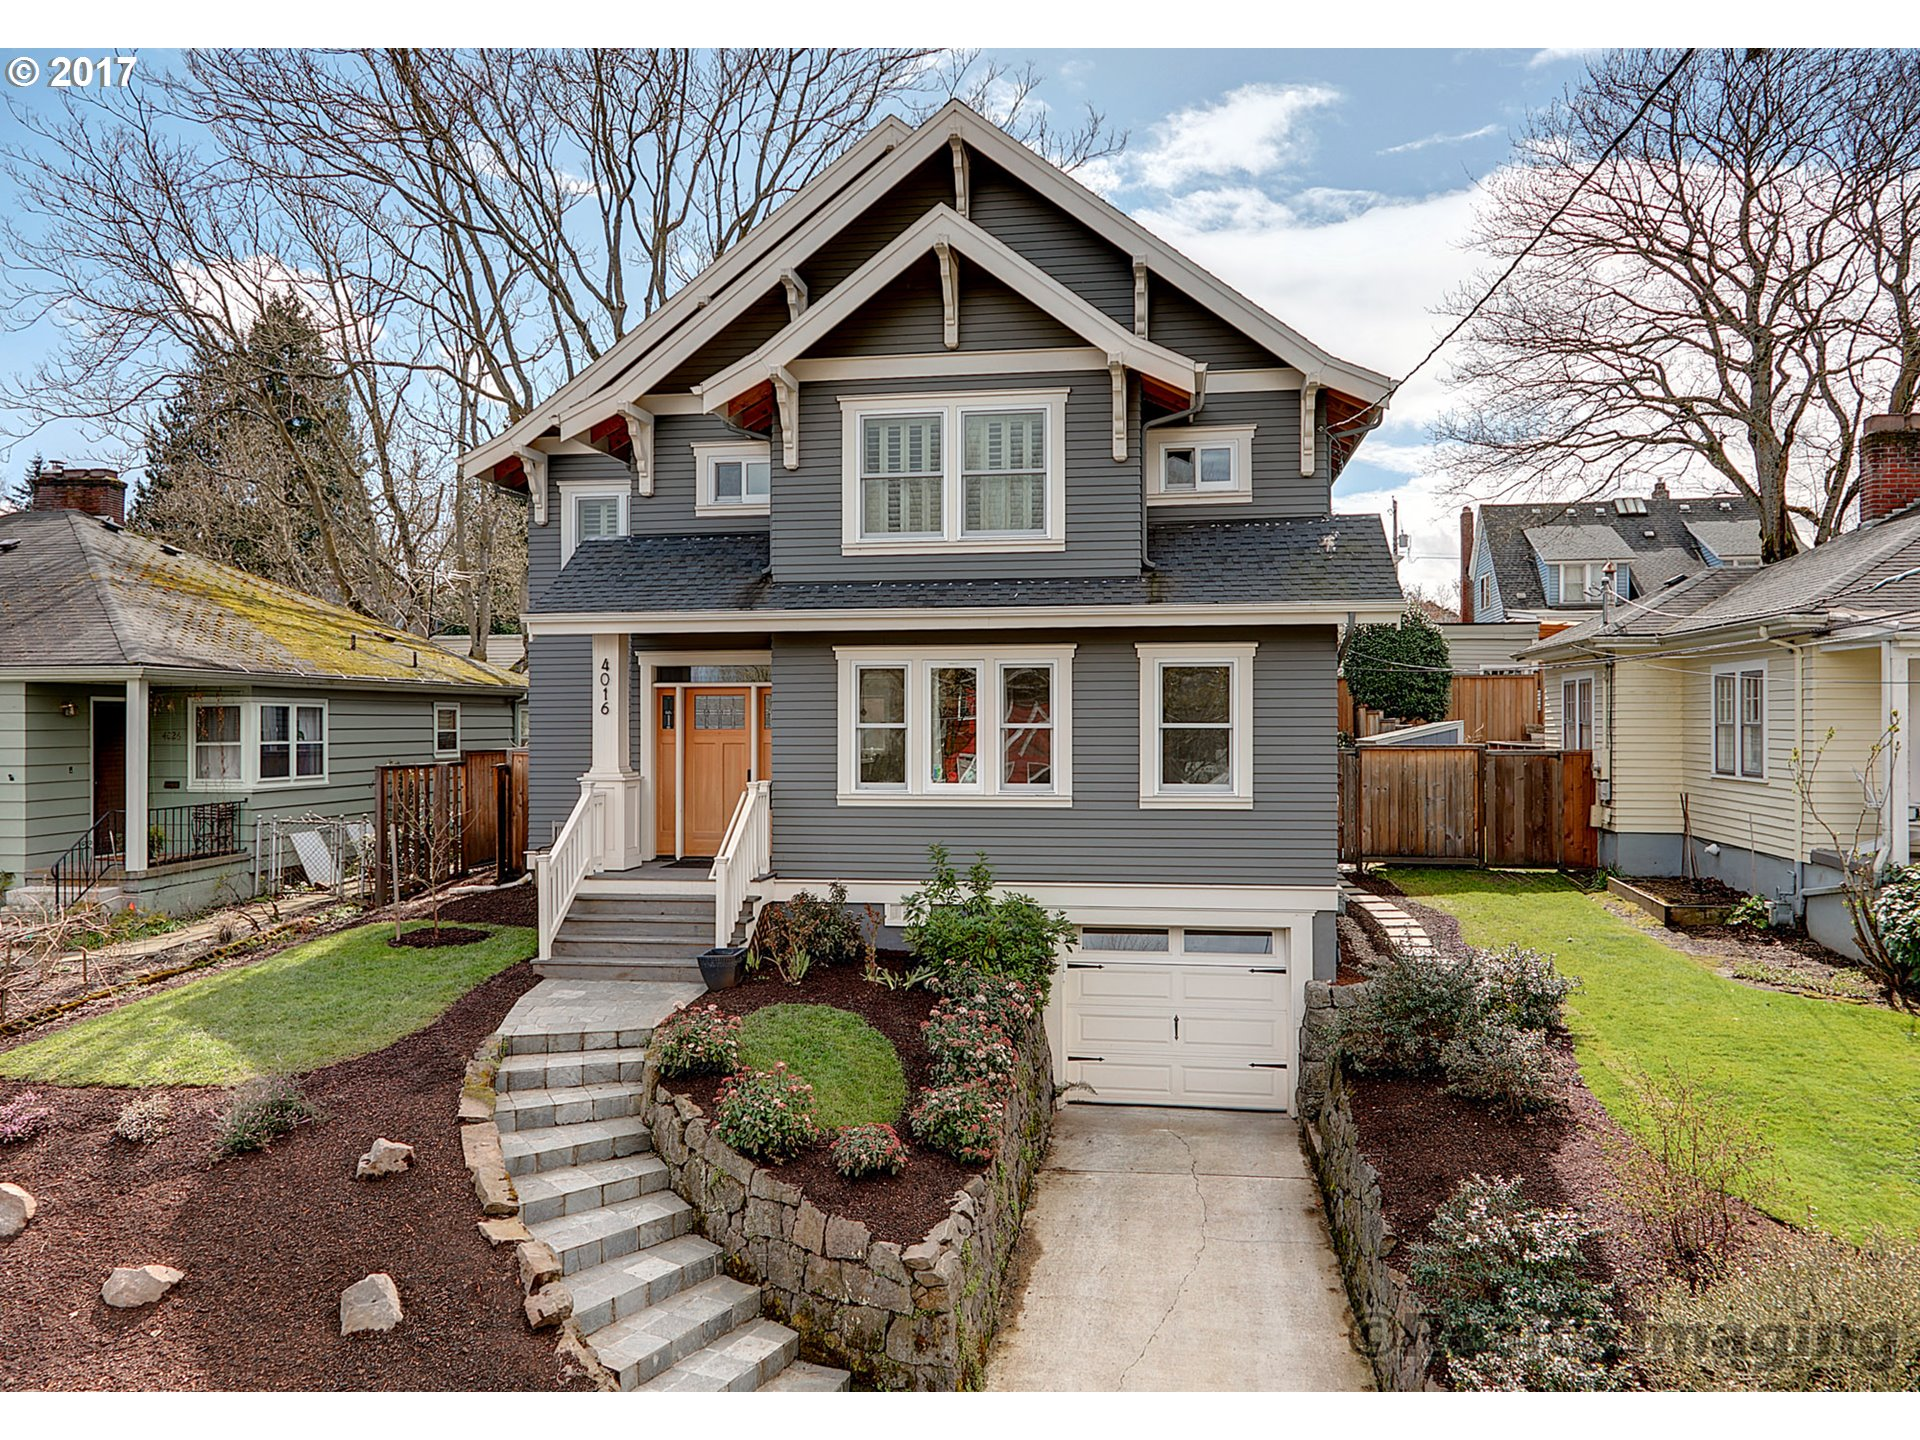 4401 sq. ft 5 bedrooms 3 bathrooms  House For Sale,Portland, OR